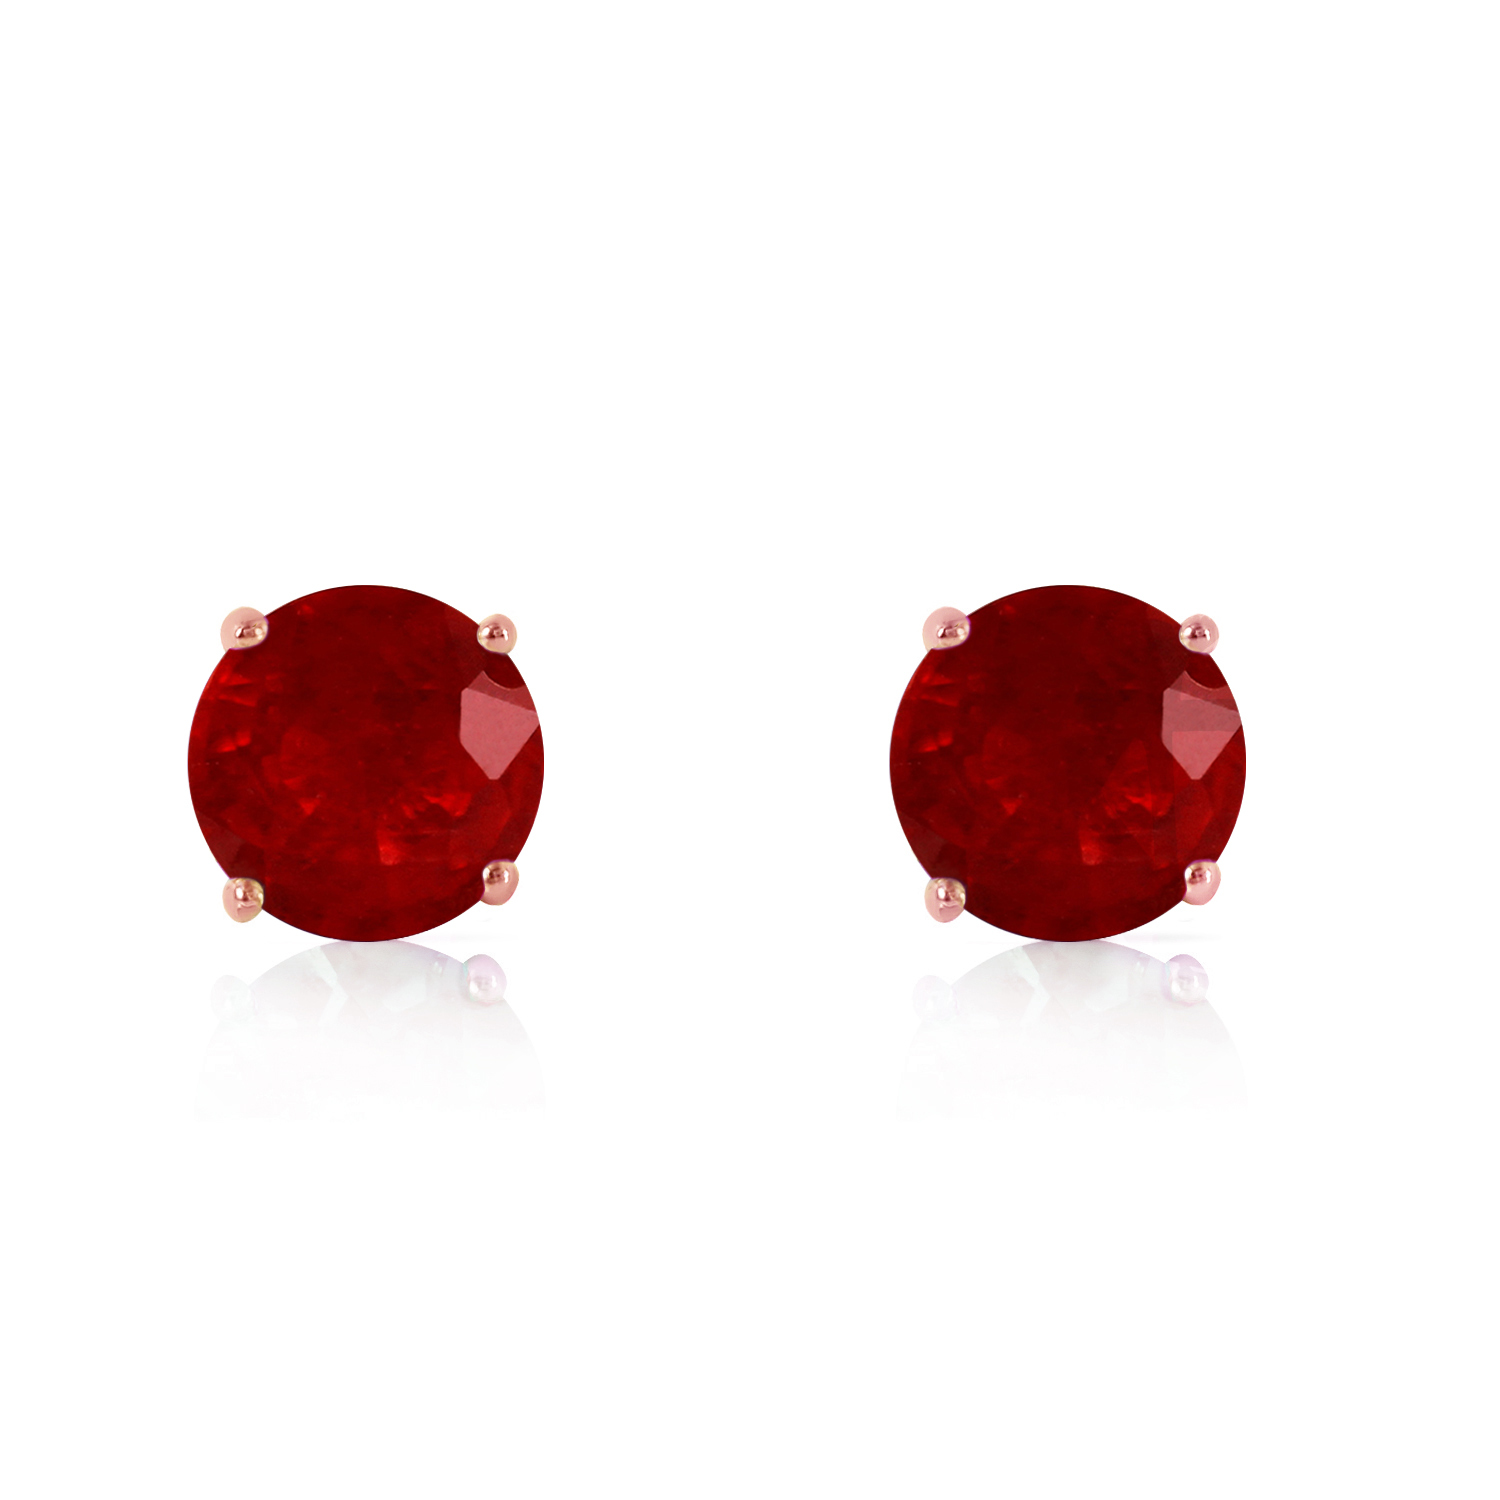 Primary image for 14K Solid Rose Gold Beautiful and Petite Ruby Stud Fashion Earrings 0.95 Ct